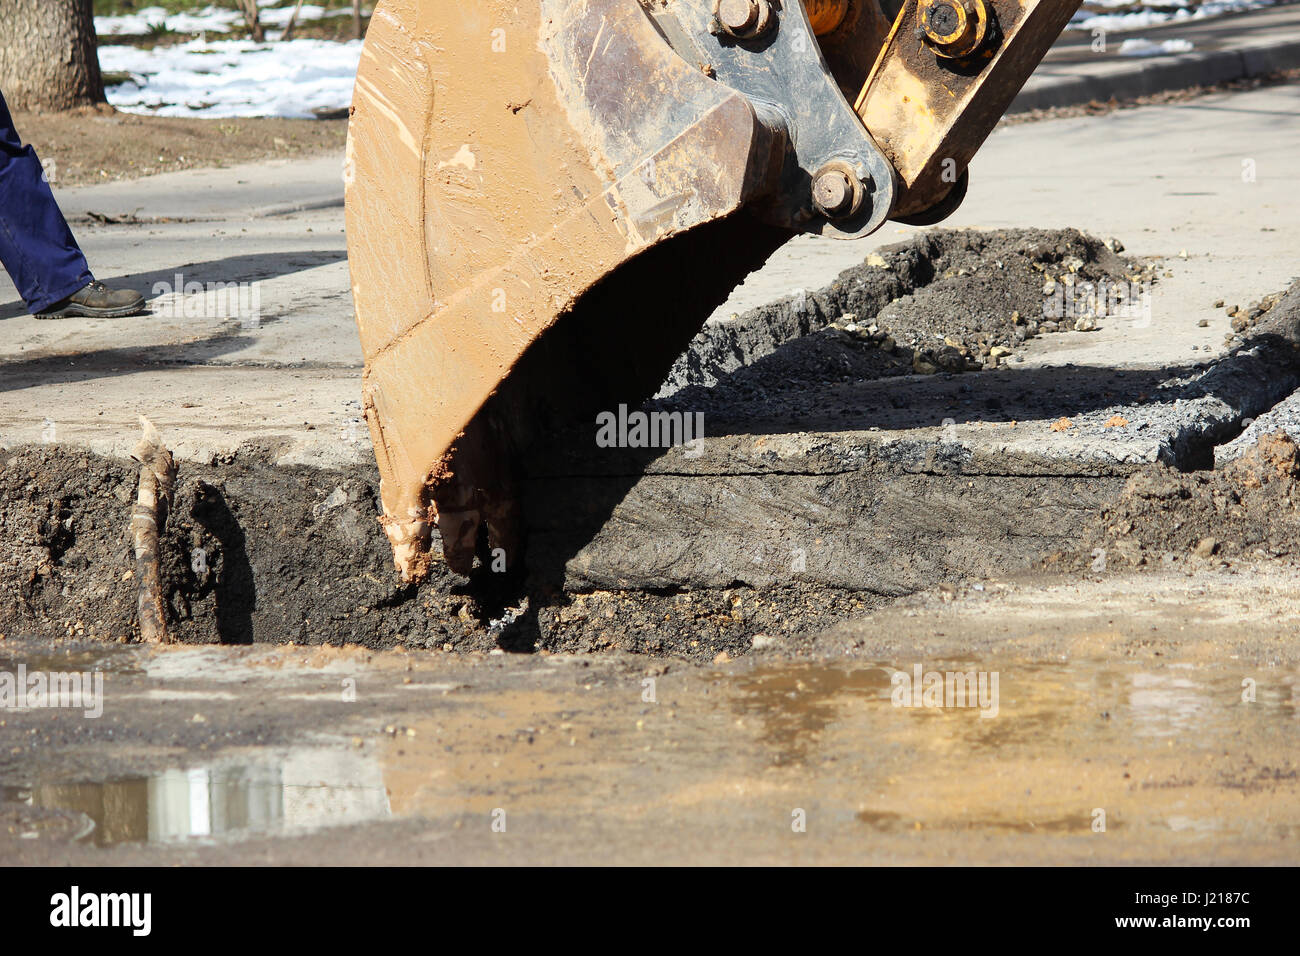 Opening the road surface when eliminating accidents under the ground. Using of a tractor with a special attachment - Stock Image